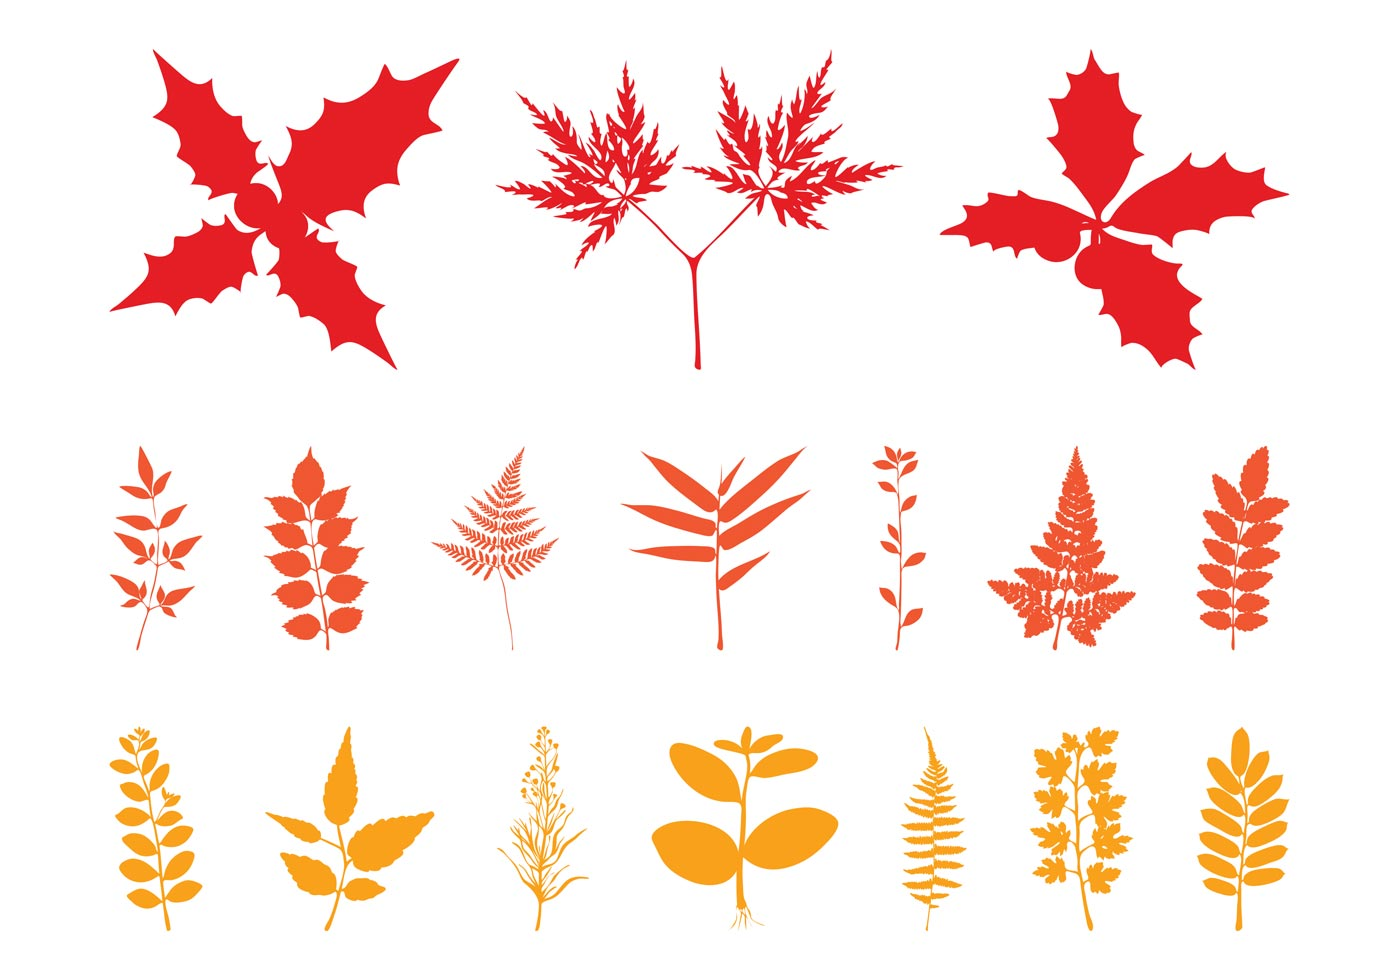 Autumn Leaves Silhouettes - Download Free Vector Art ...